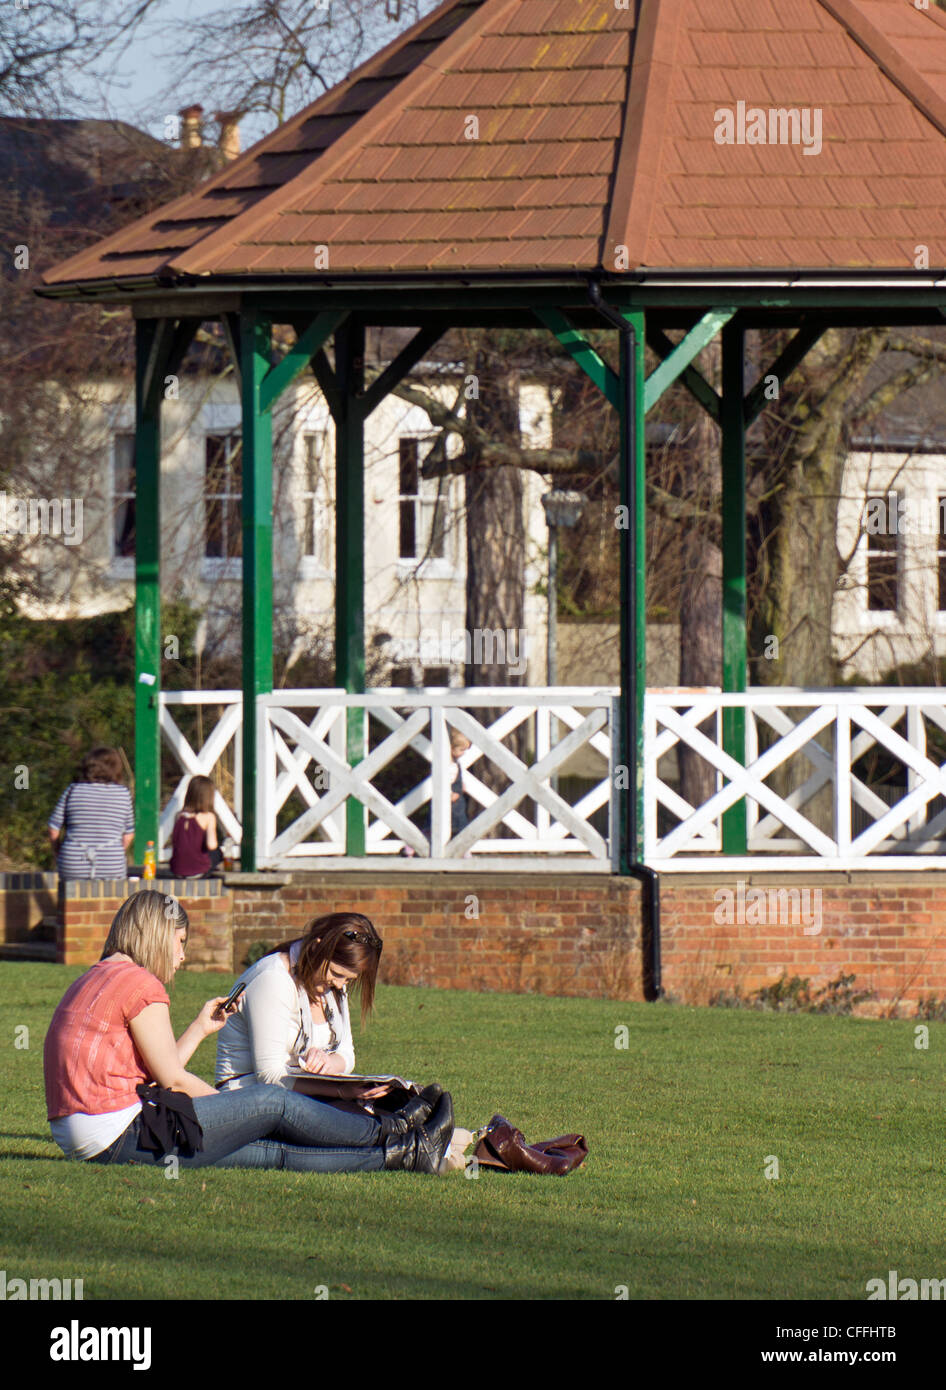 Two women relax on the grass in front of the Bandstand in Leighton Buzzard - Stock Image